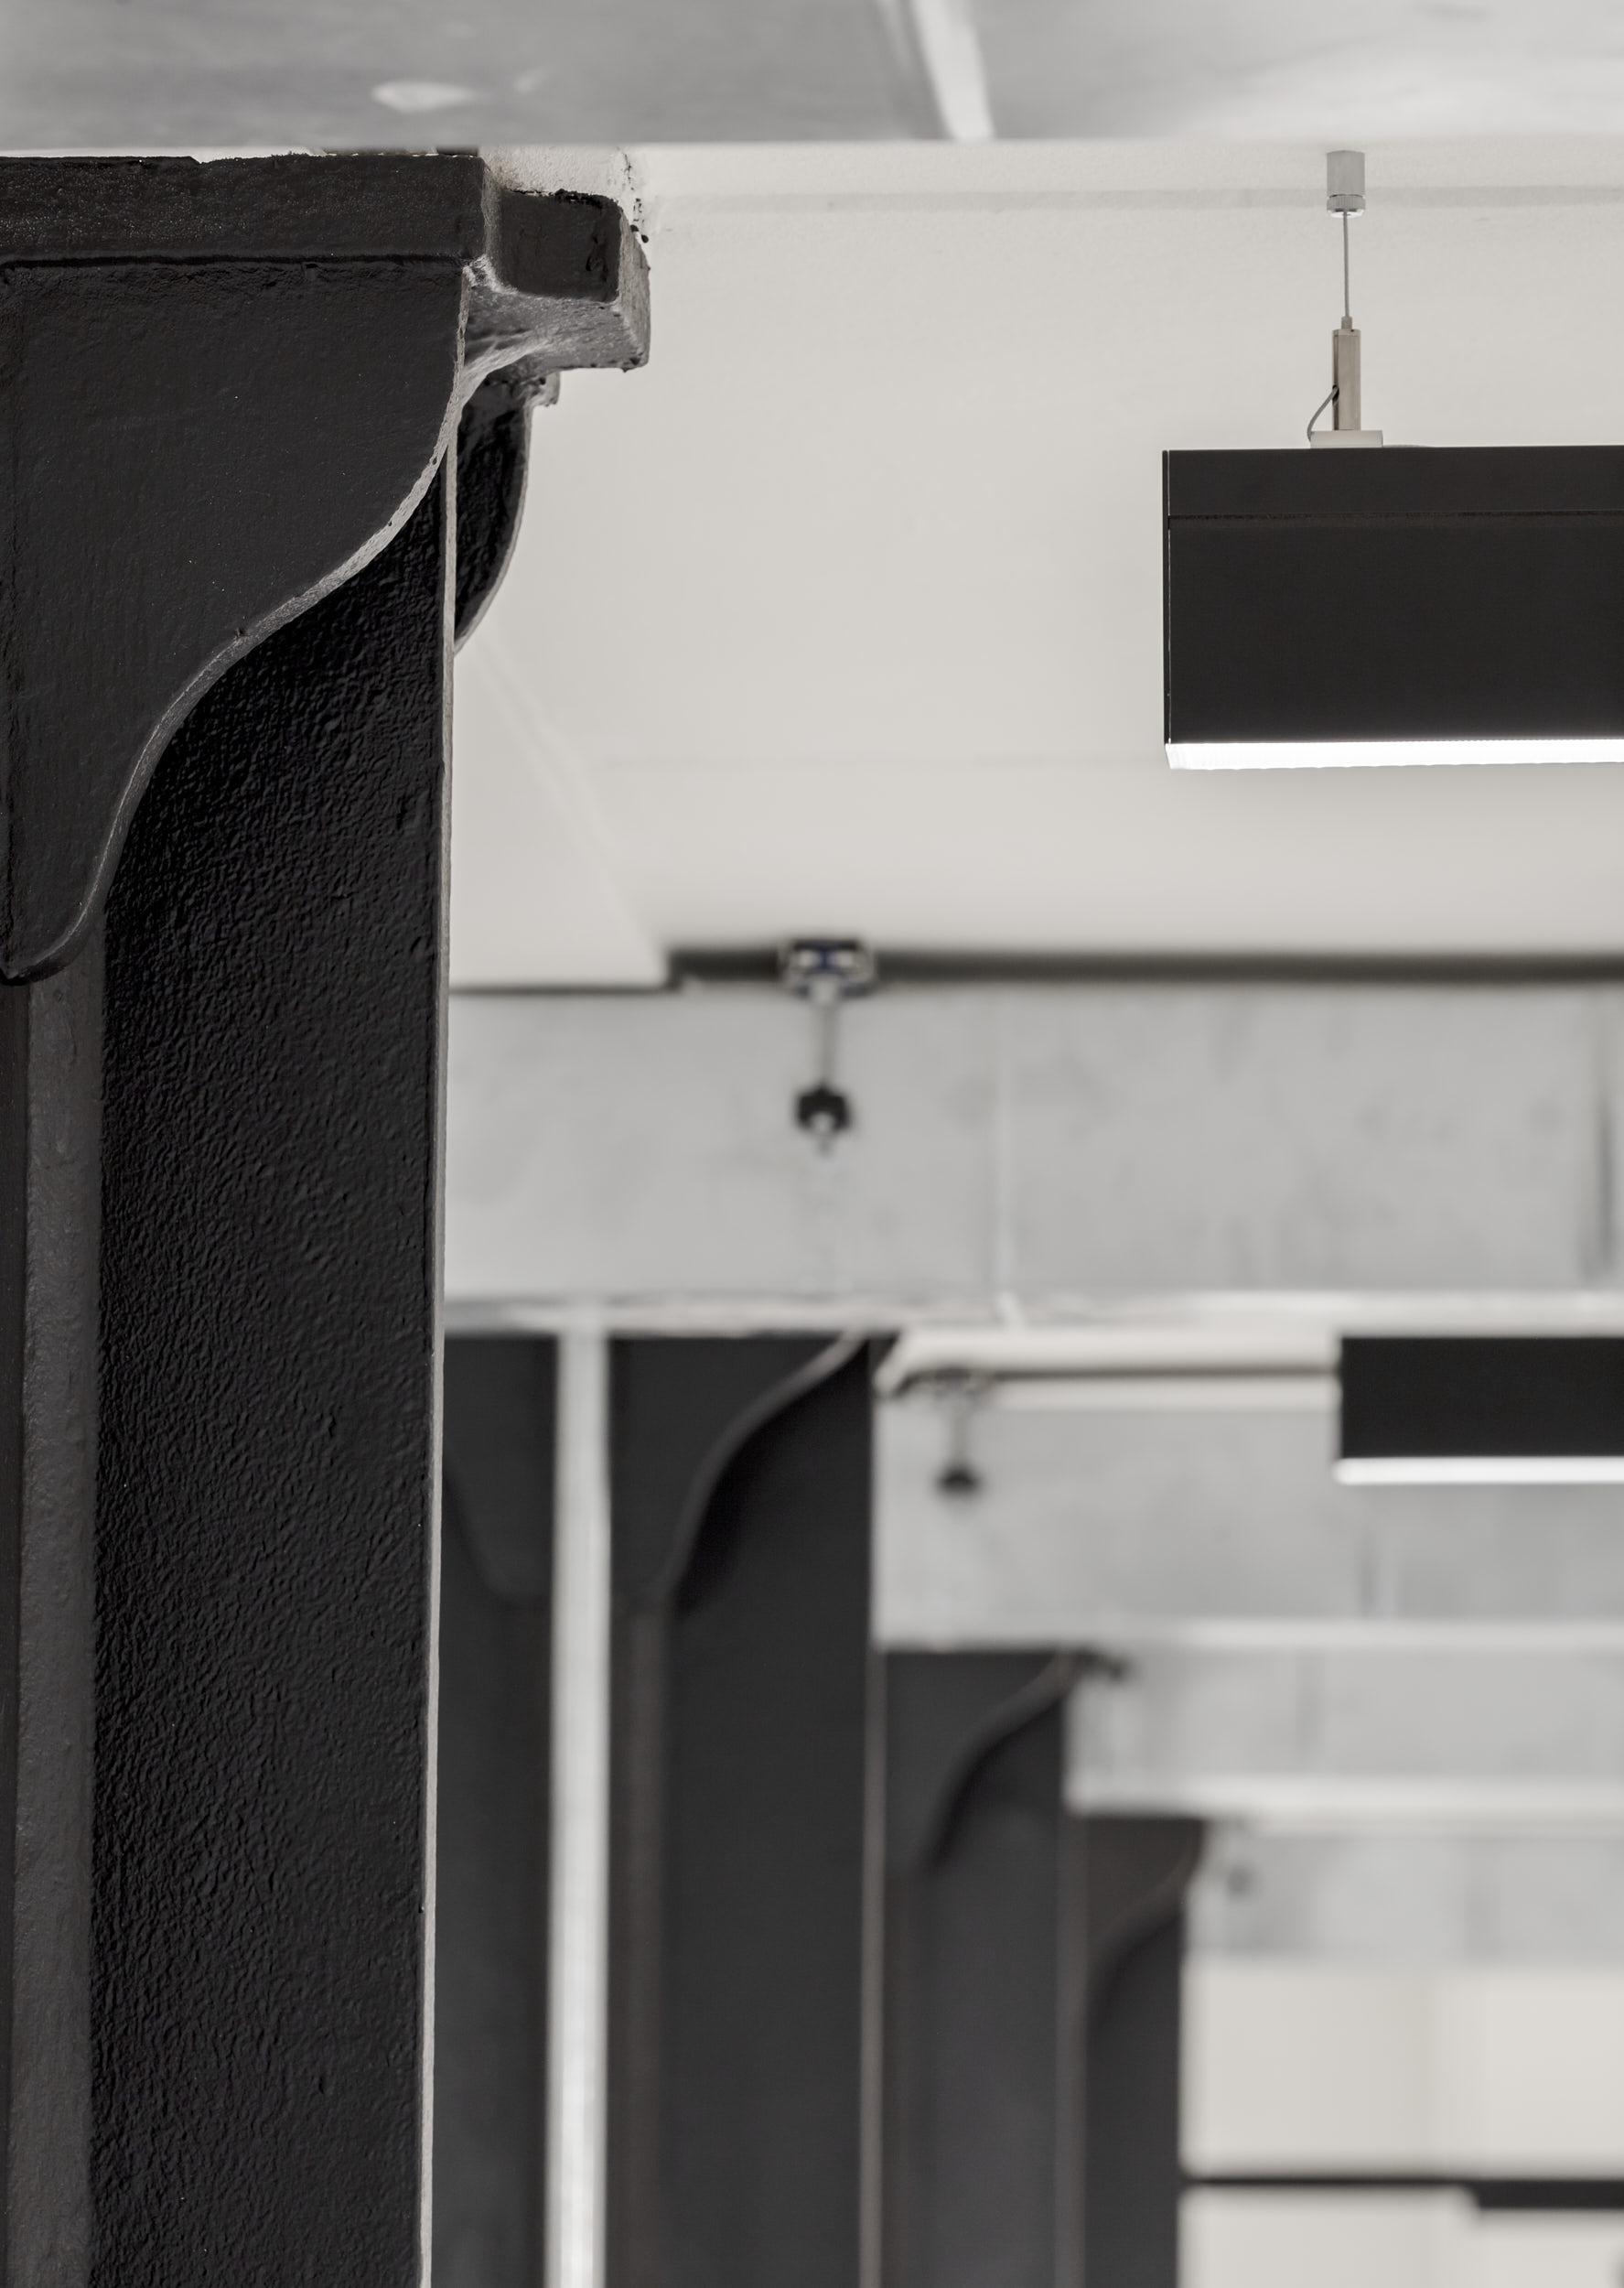 Interior photography showing how the rhythm of the existing structure is echoed by the lighting installation.